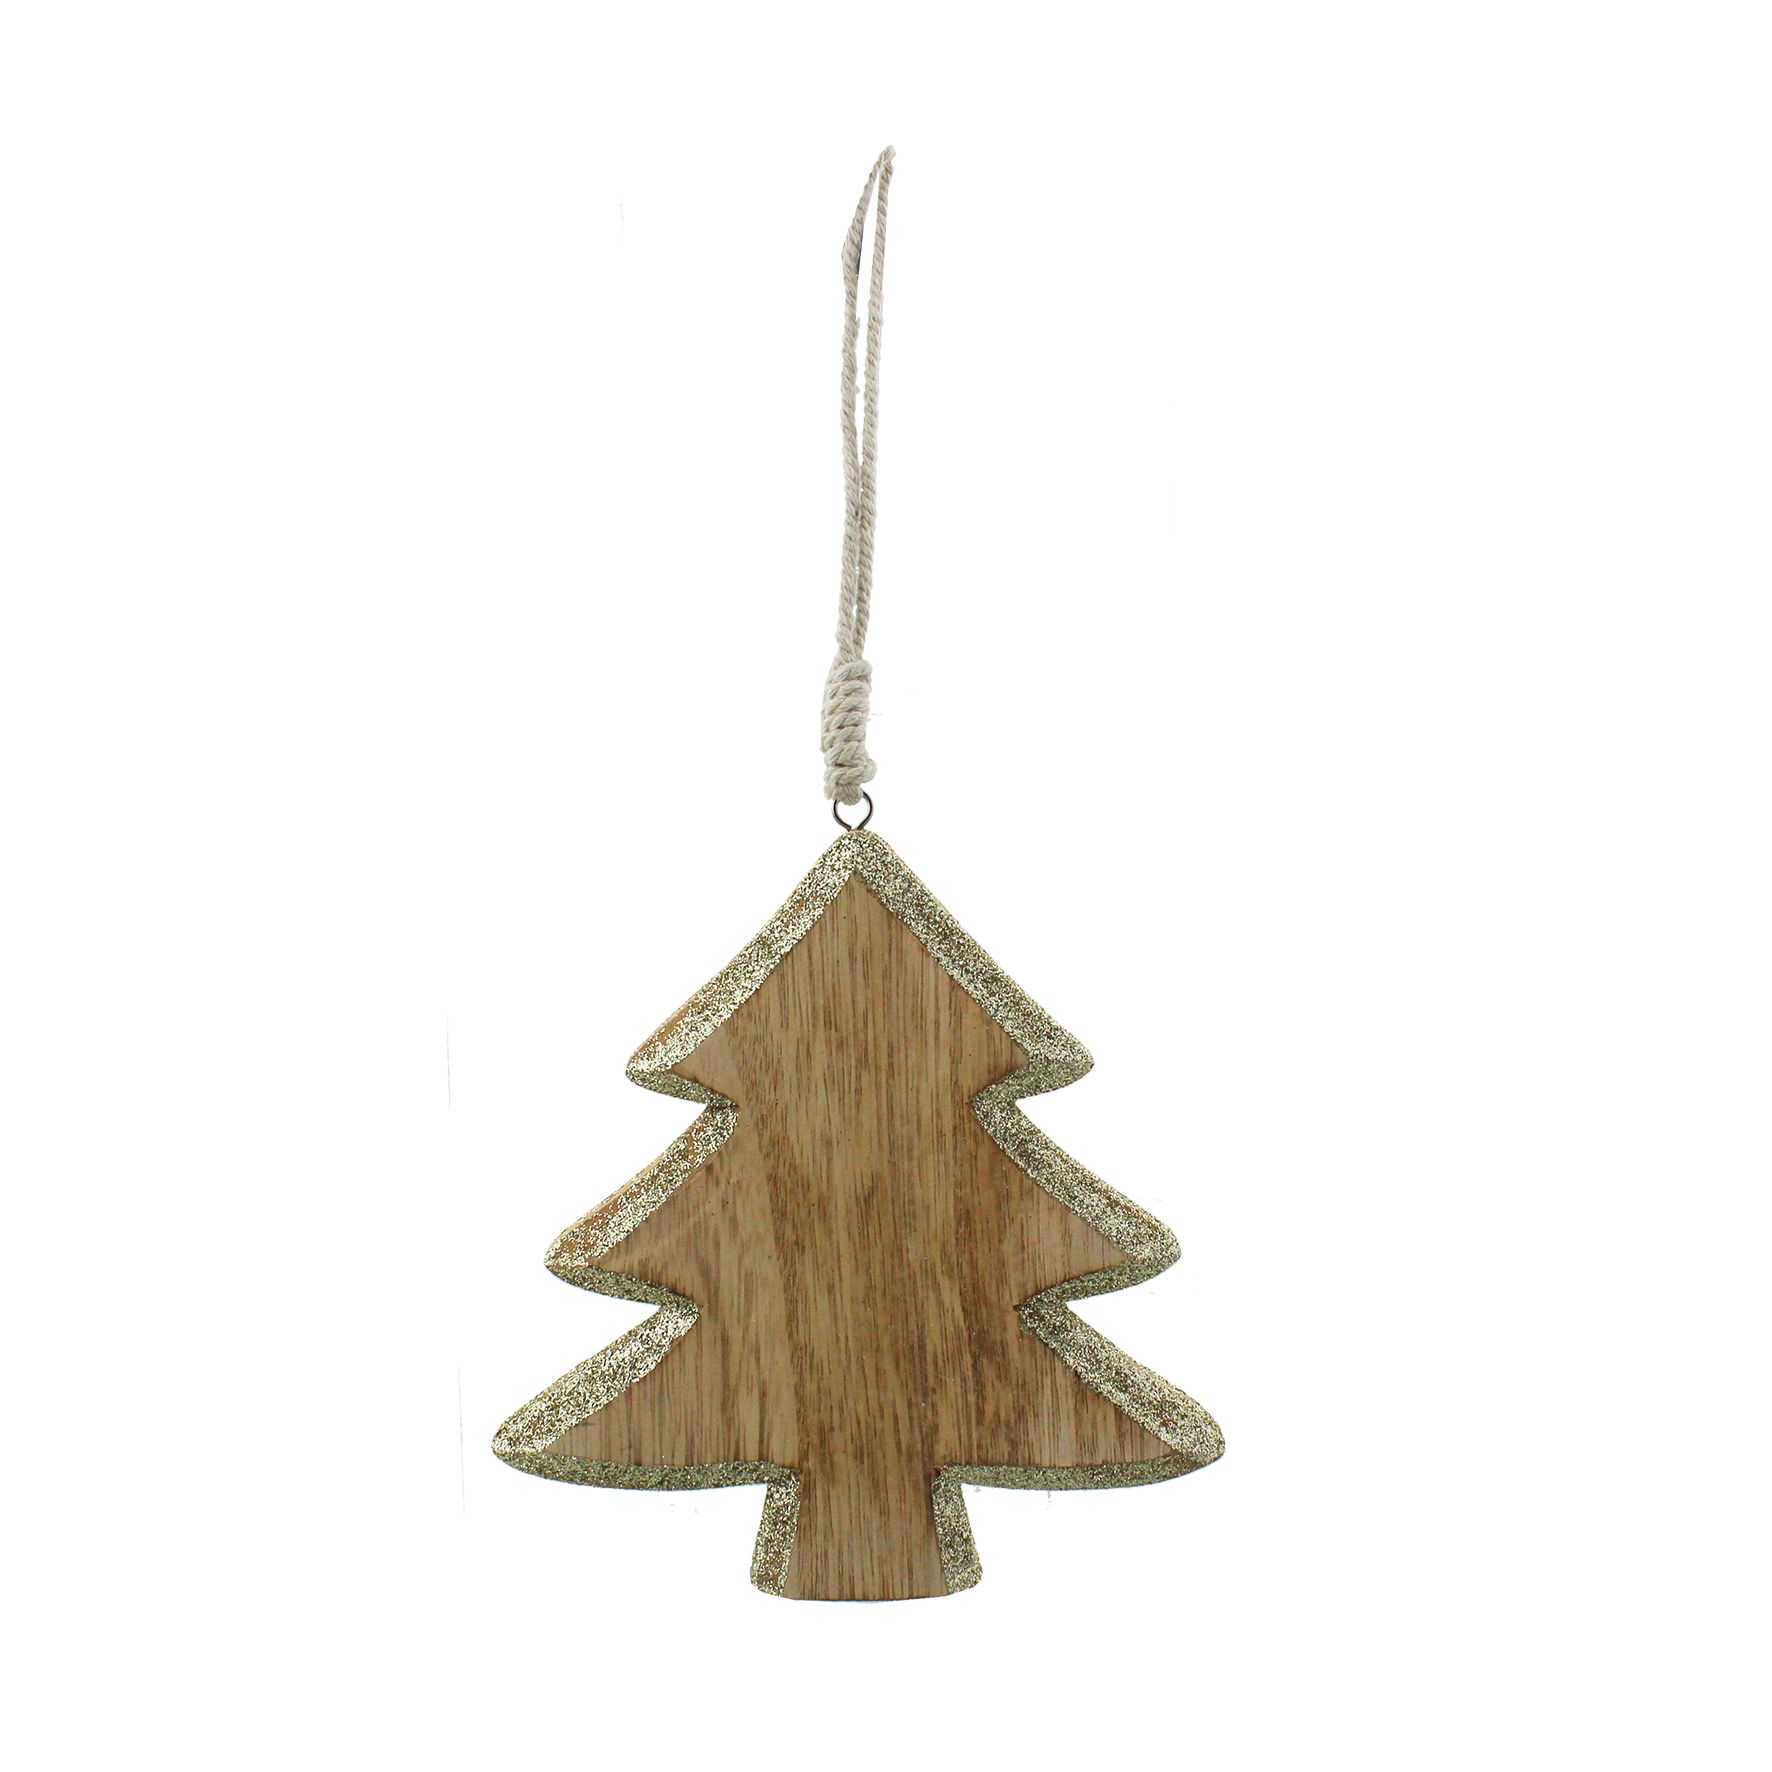 Wood Christmas Decorations.Wooden With Gold Glitter Trim Hanging Christmas Tree Decoration